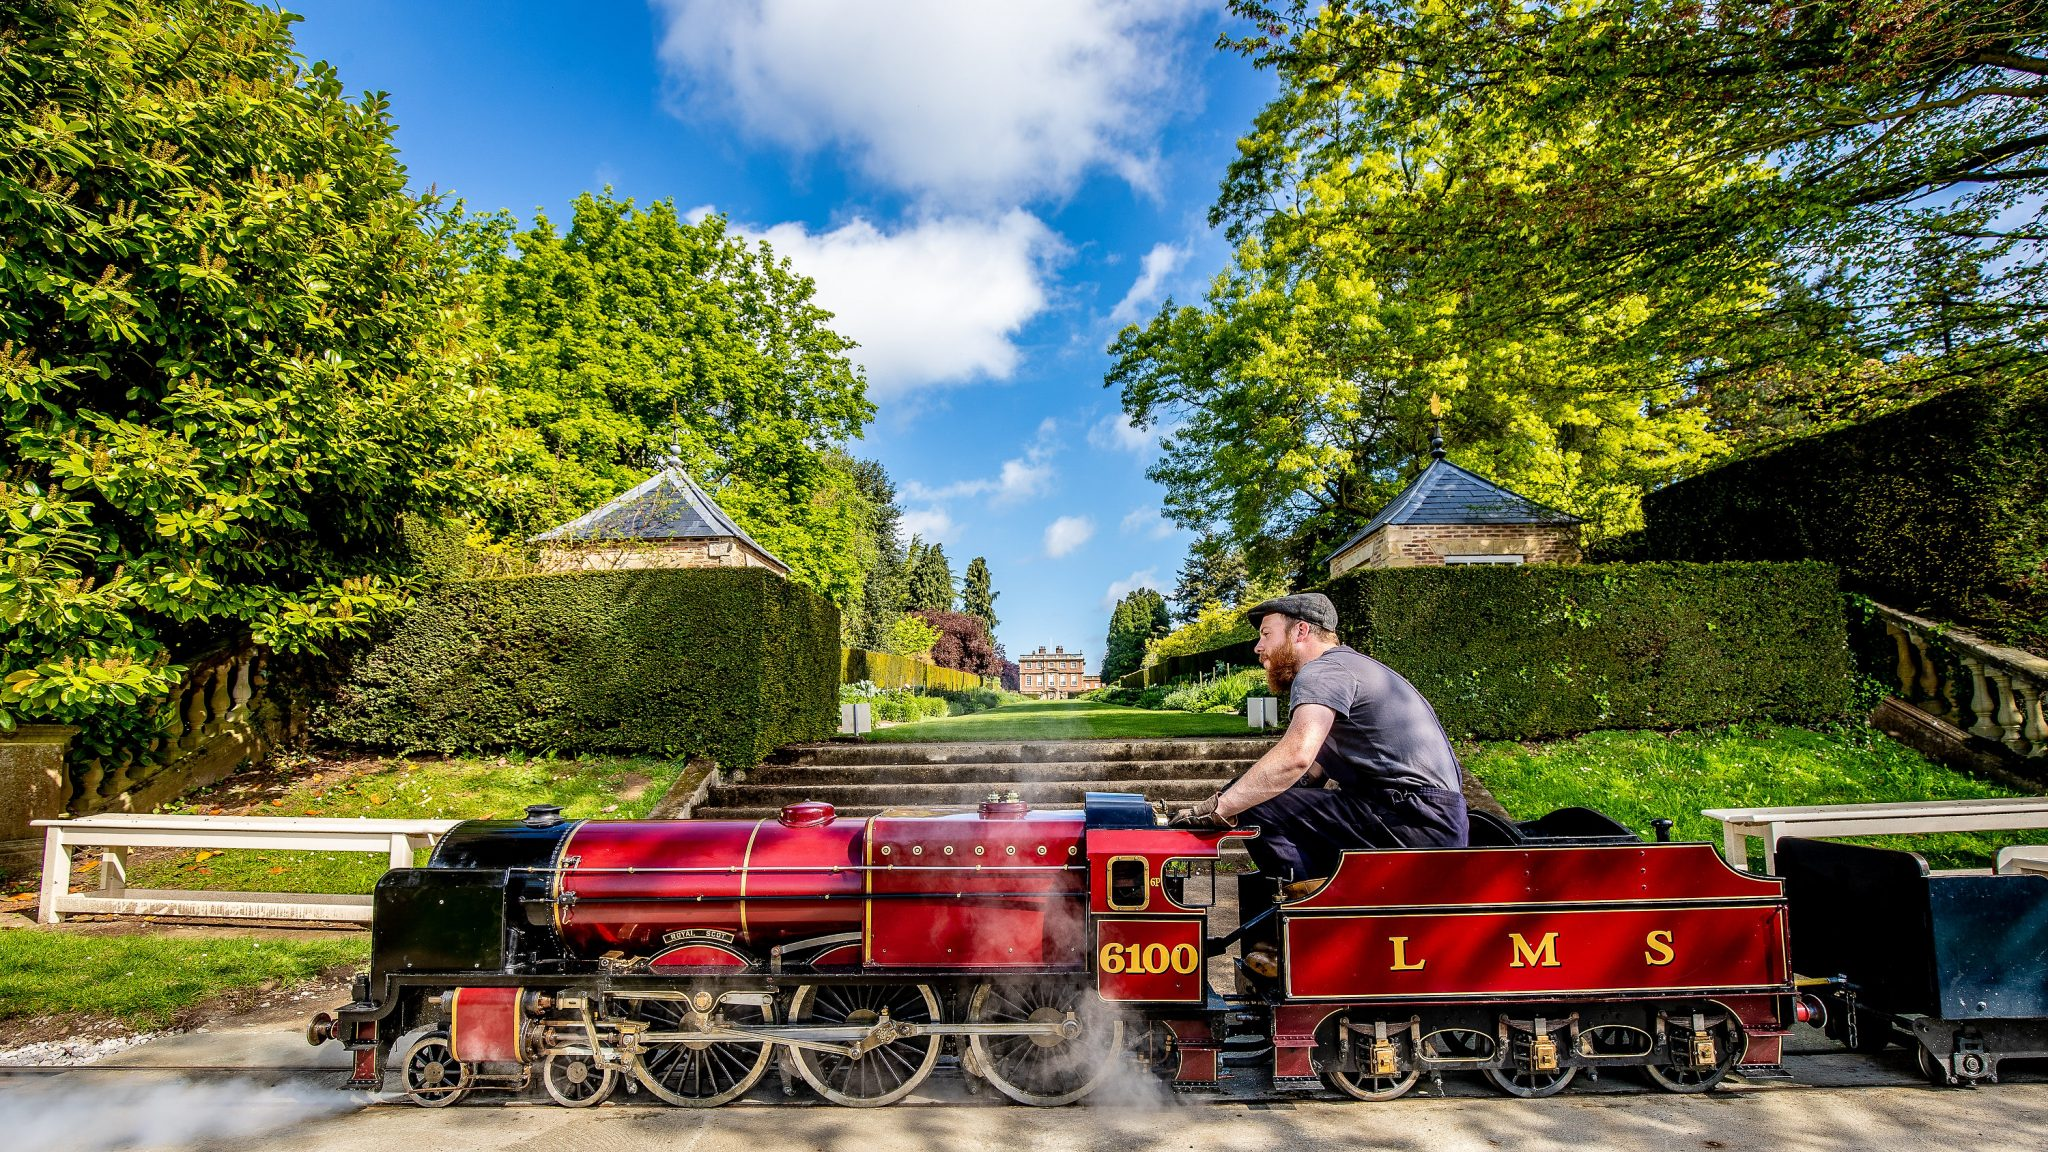 The Miniature Railway - Newby Hall